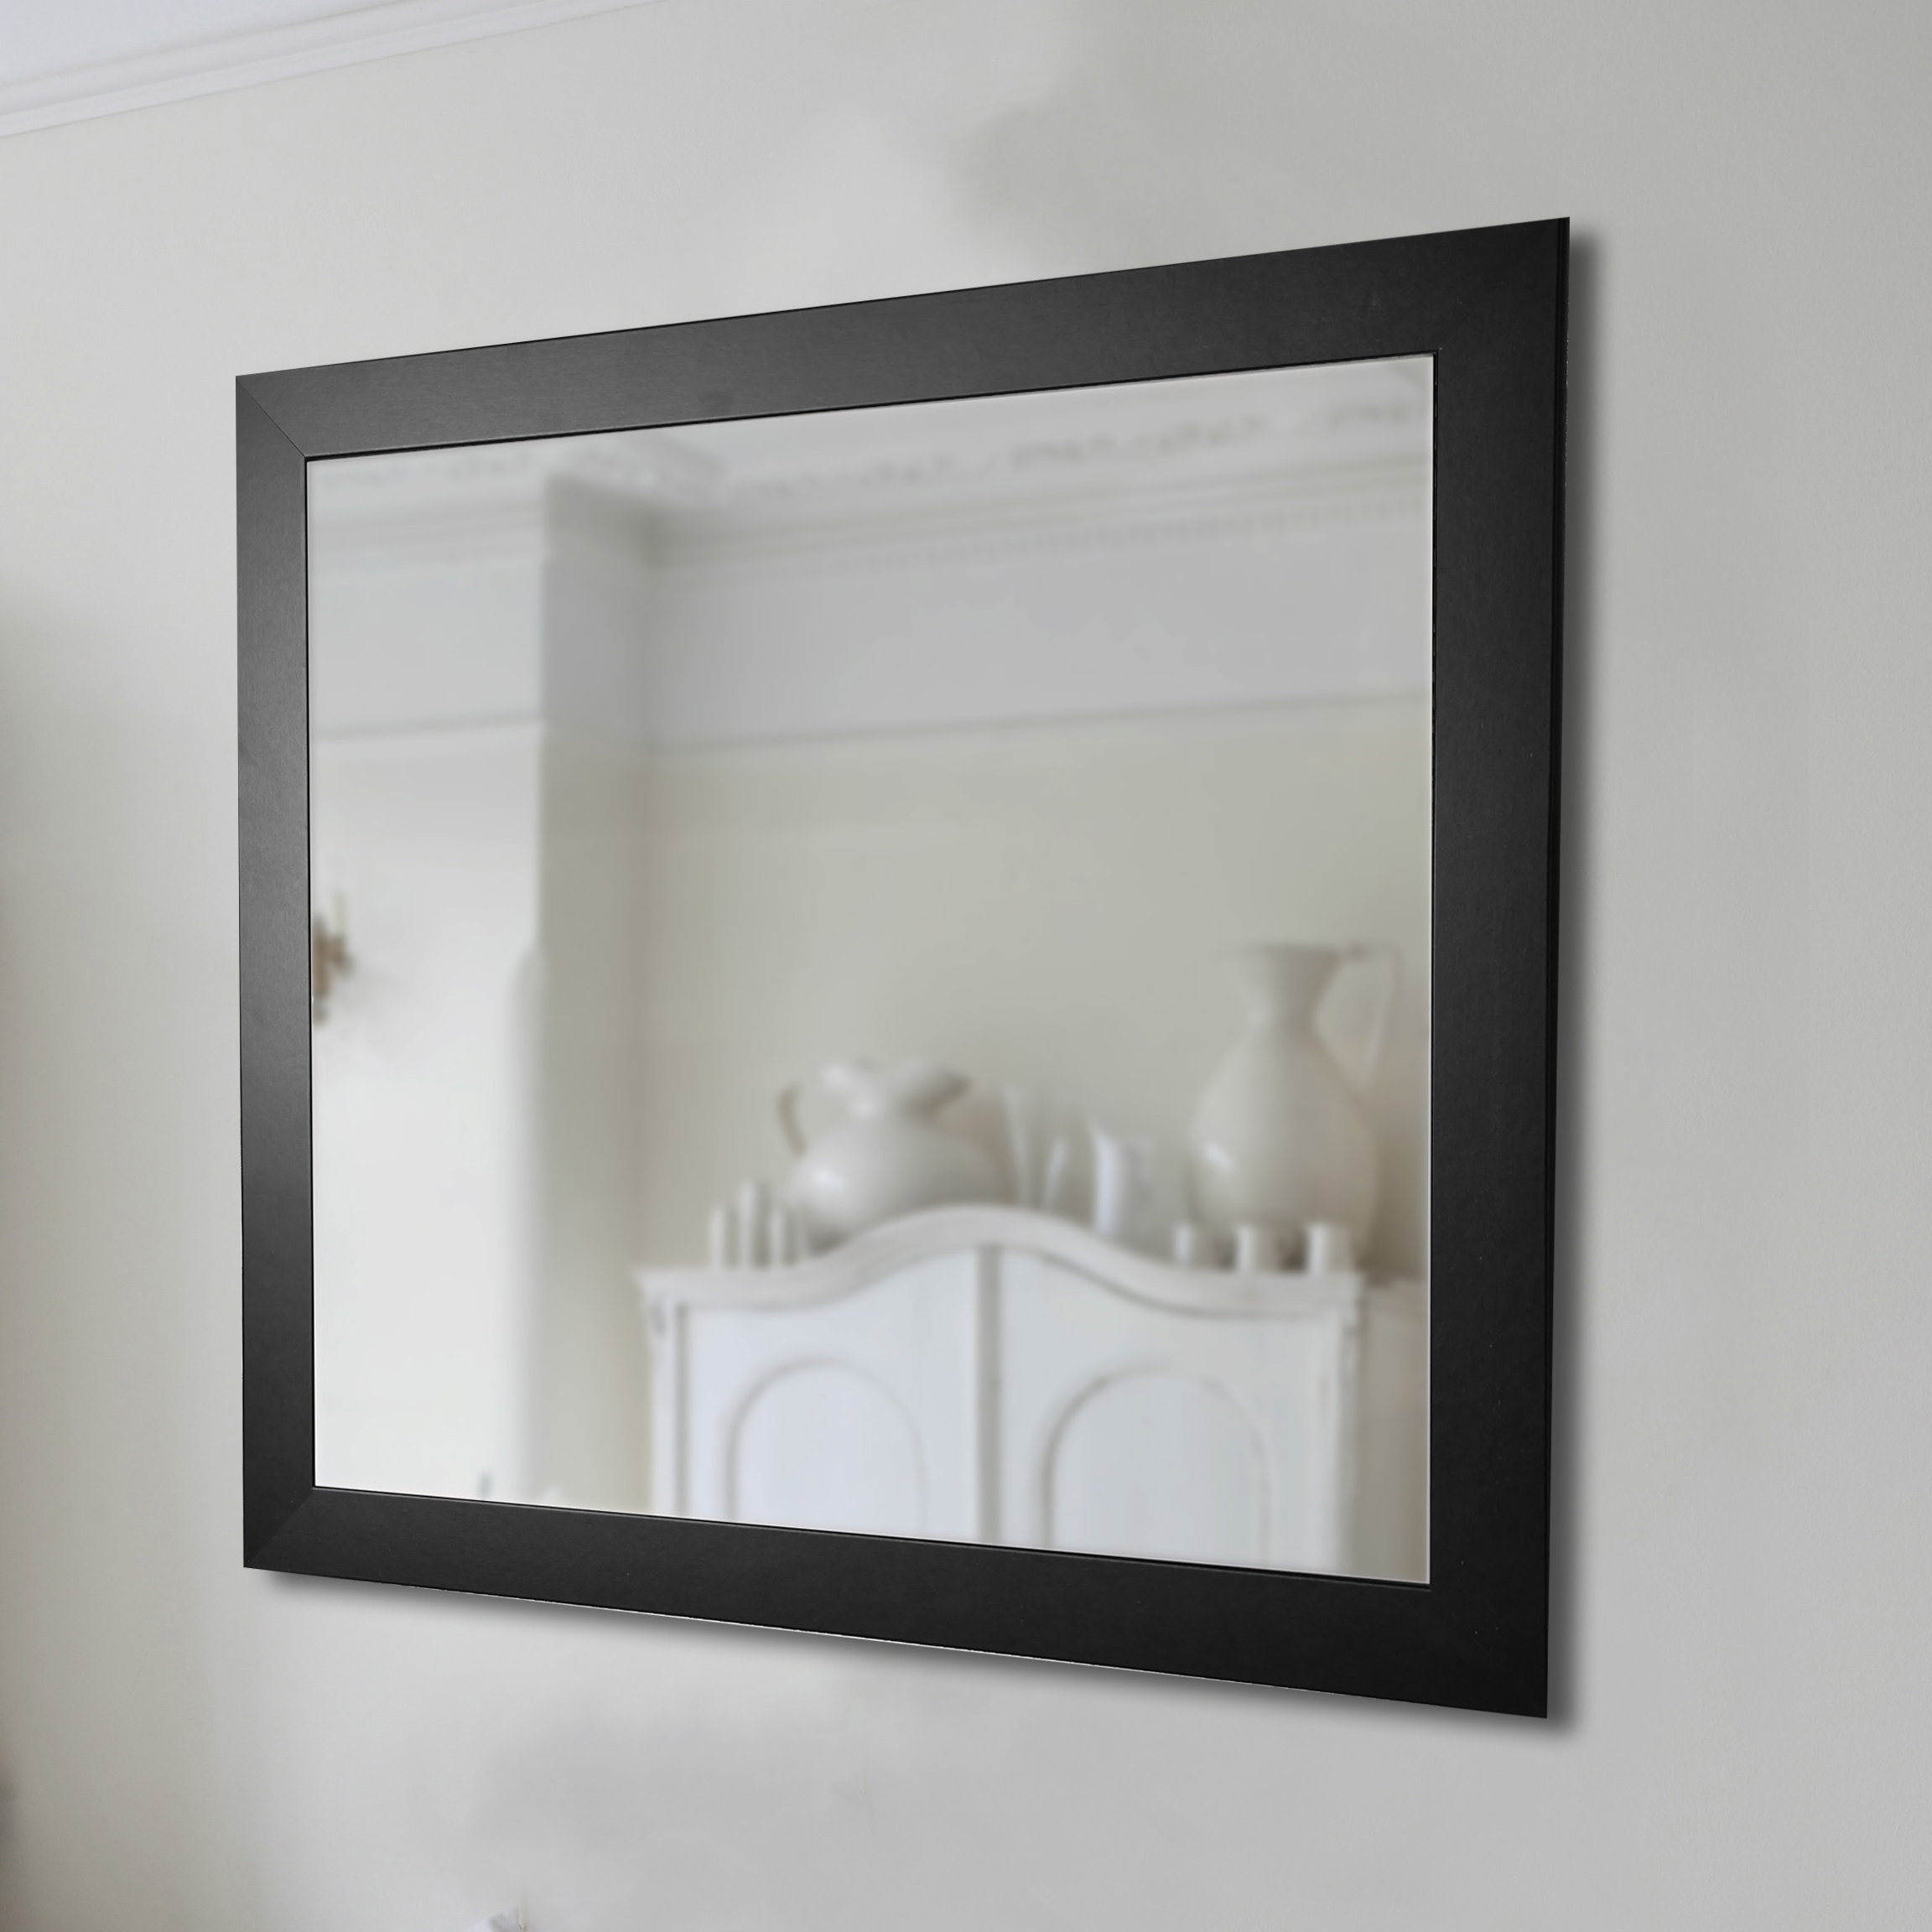 Preferred Accent Wall Mirrors With Regard To American Made Accent Wall Mirror (View 19 of 20)